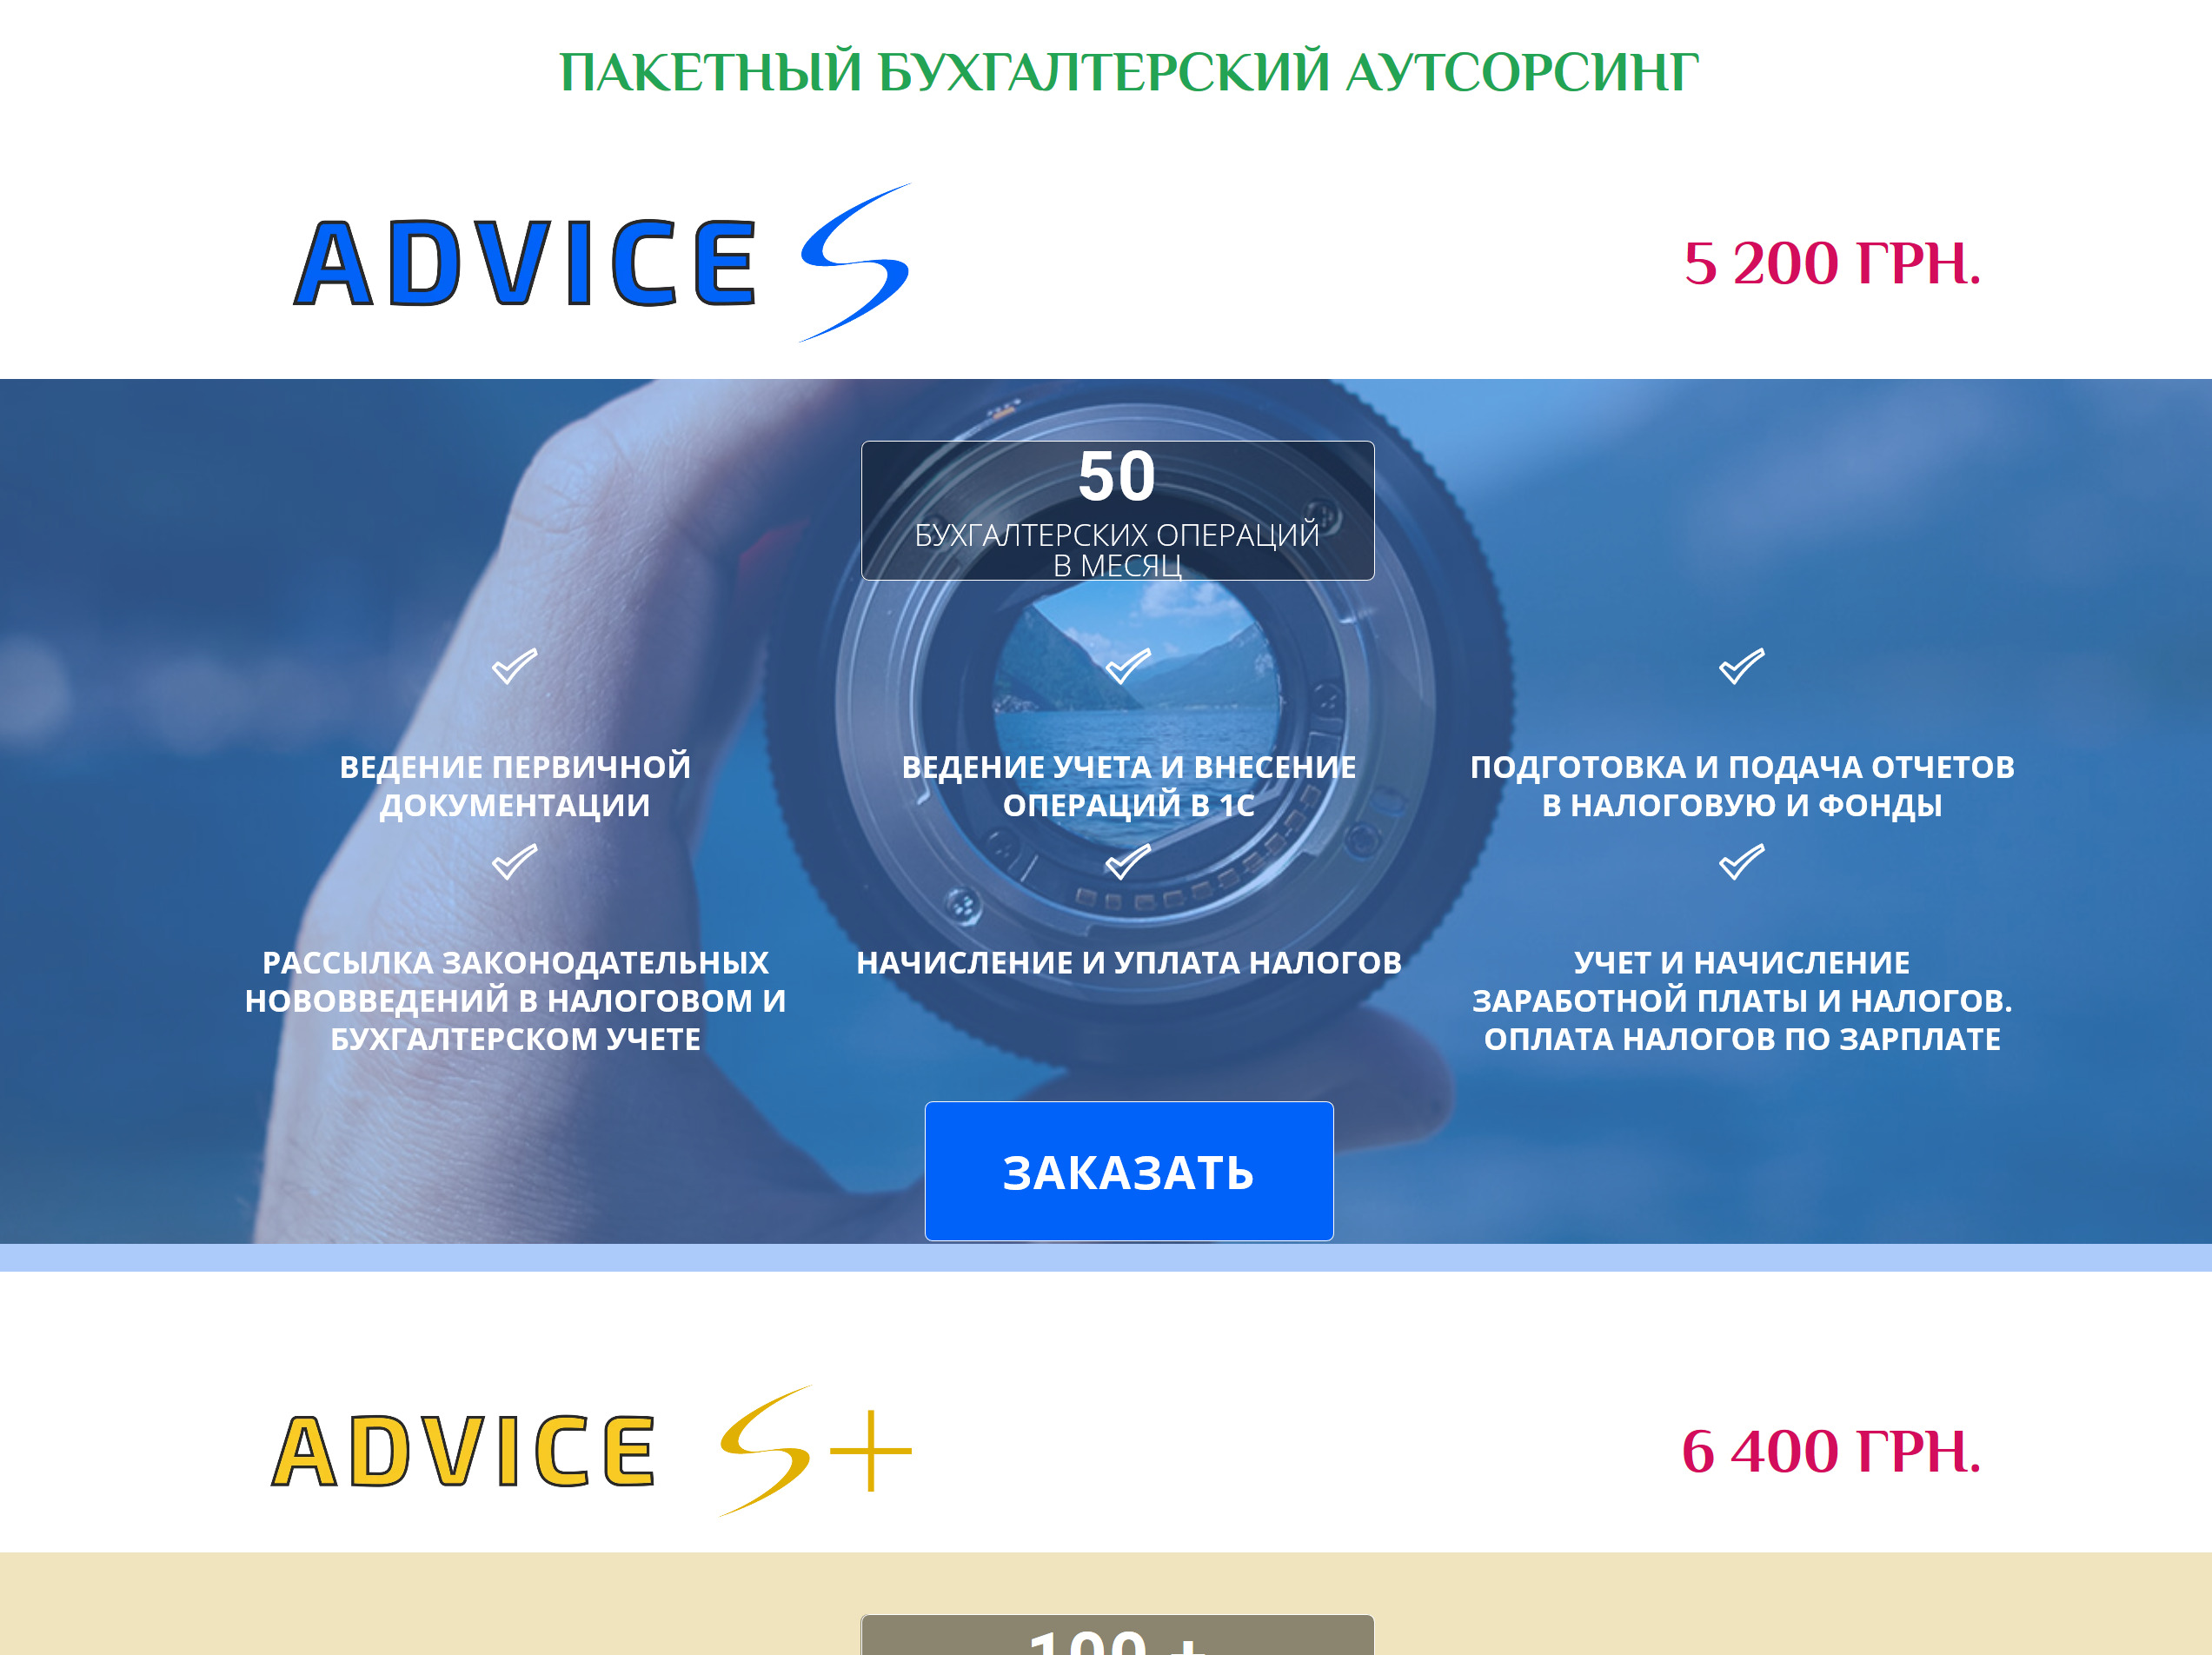 Пакетный бухгалтерский аутсорсинг ADVICE - Advice Audit Consulting Group